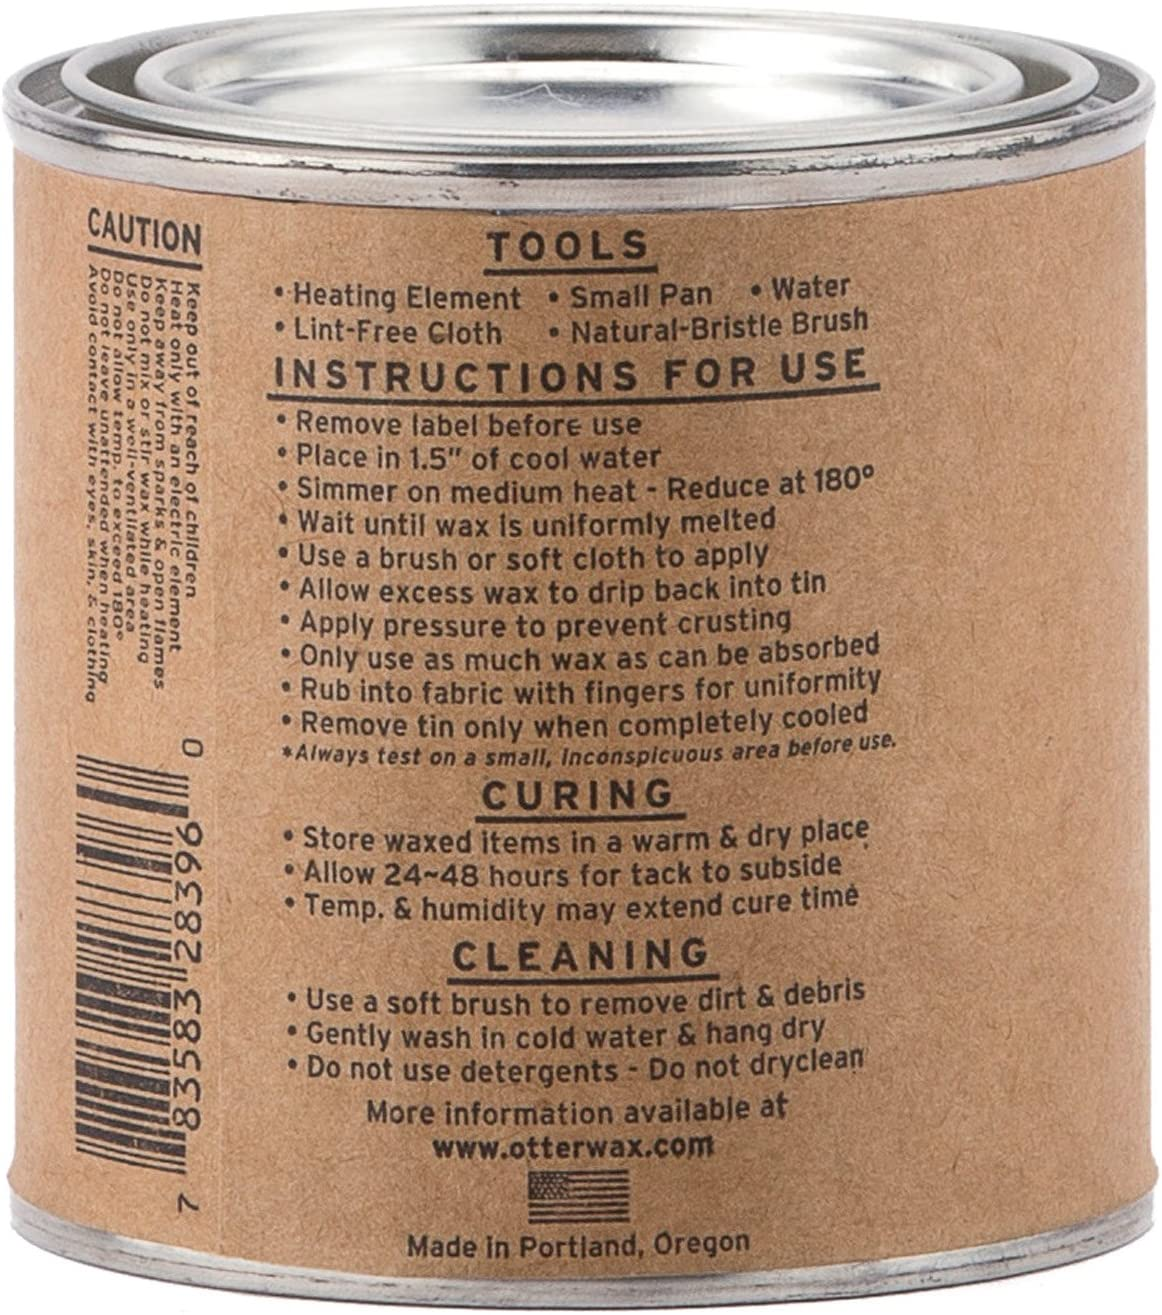 Otter Wax Heat-Activated Fabric Dressing   1/2 Pint   All-Natural Water Repellent   Made in USA: Sports & Outdoors